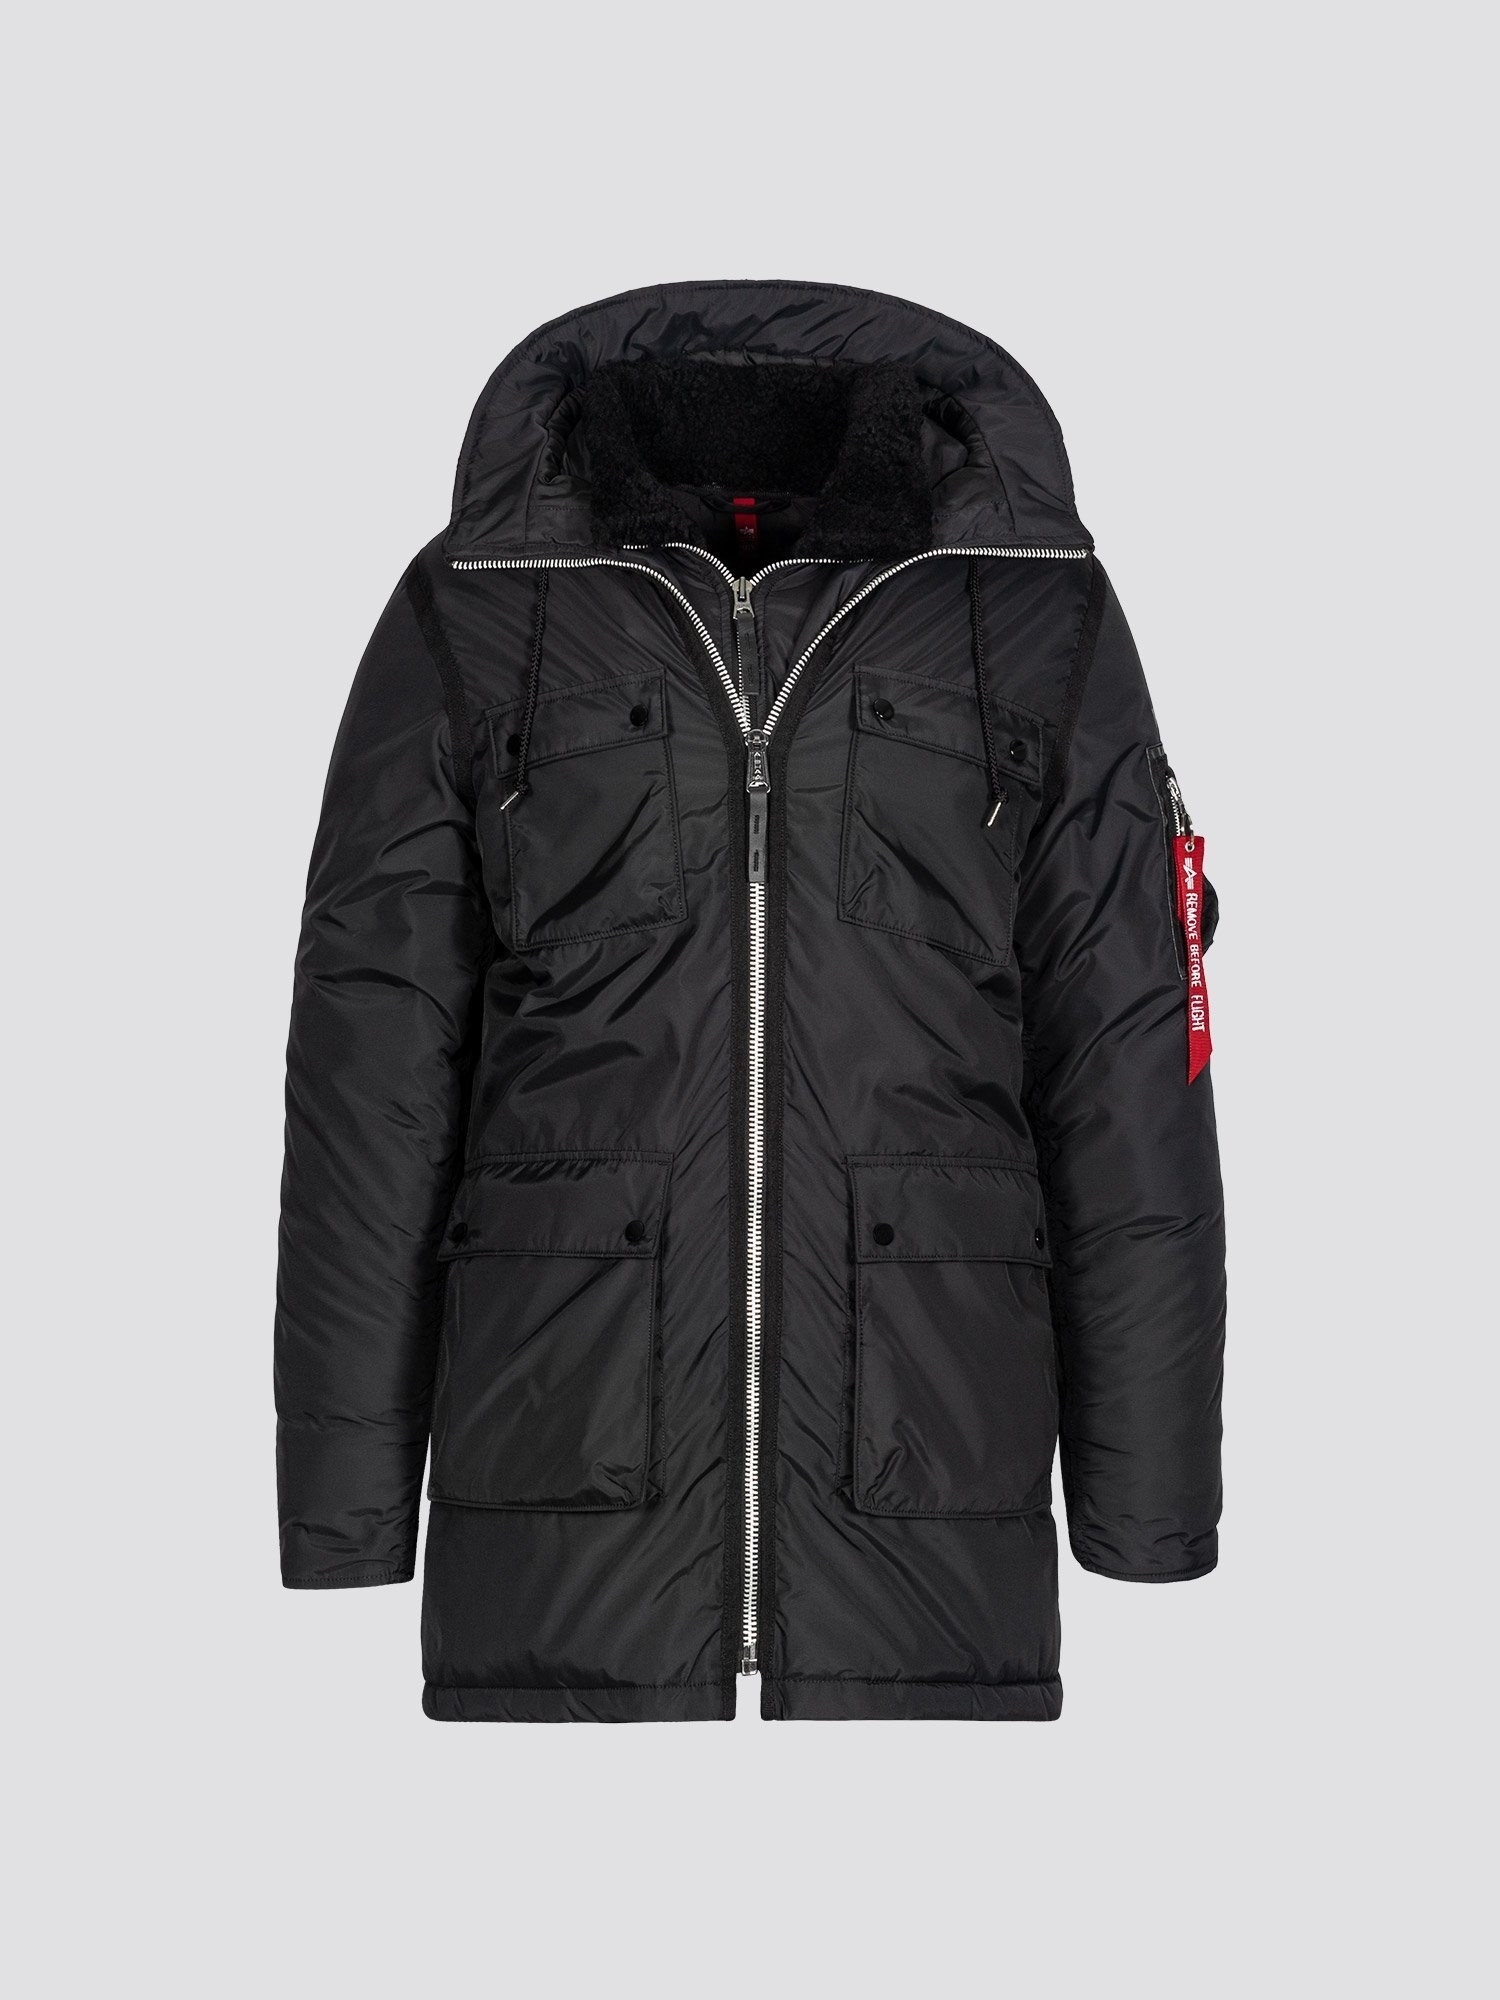 the n-3b skytrain parka